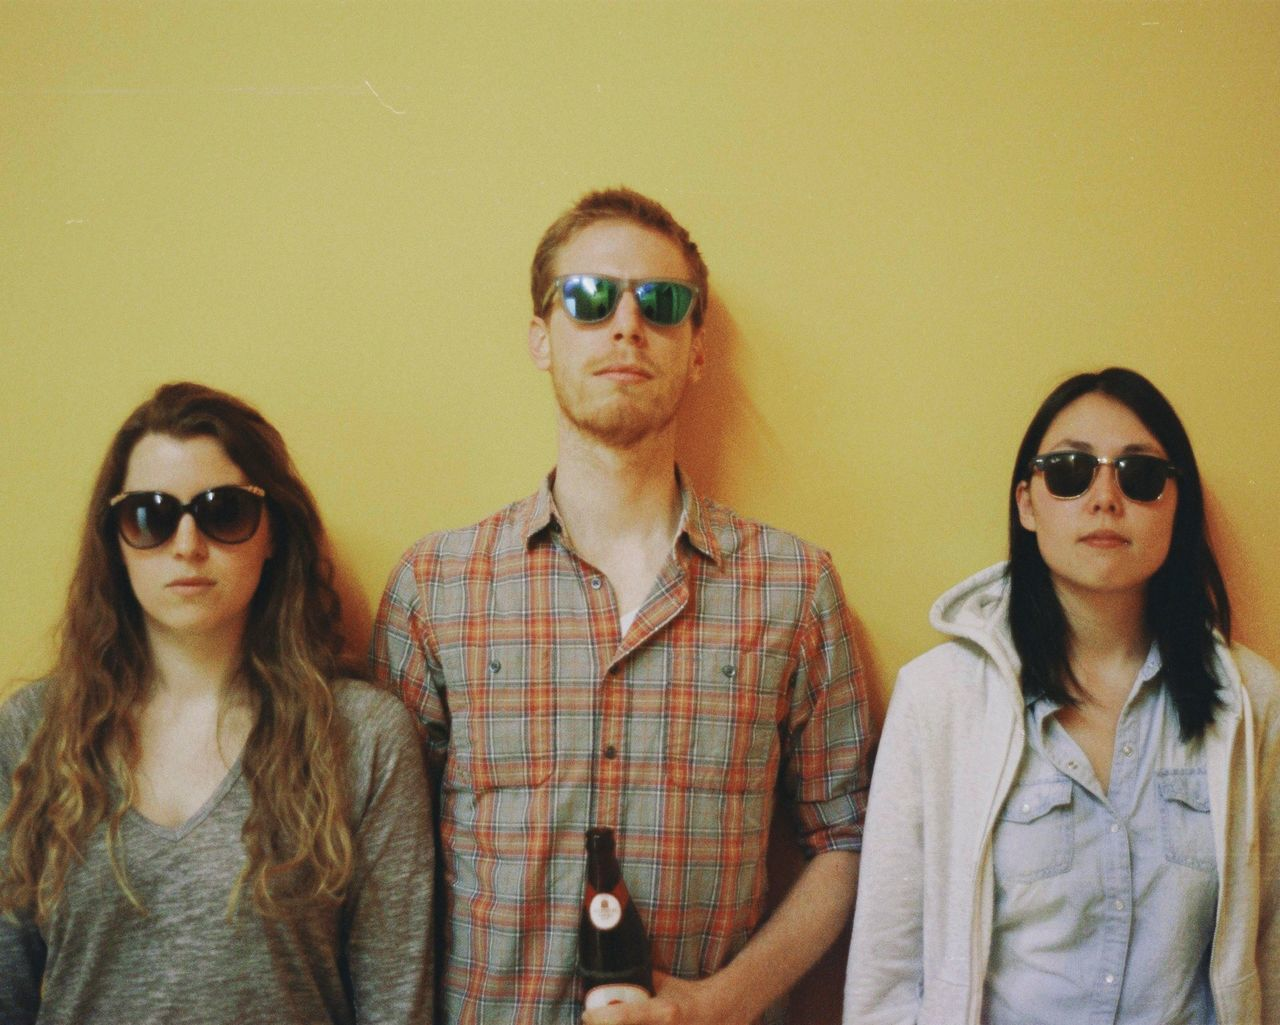 Portrait of three young adults over yellow background